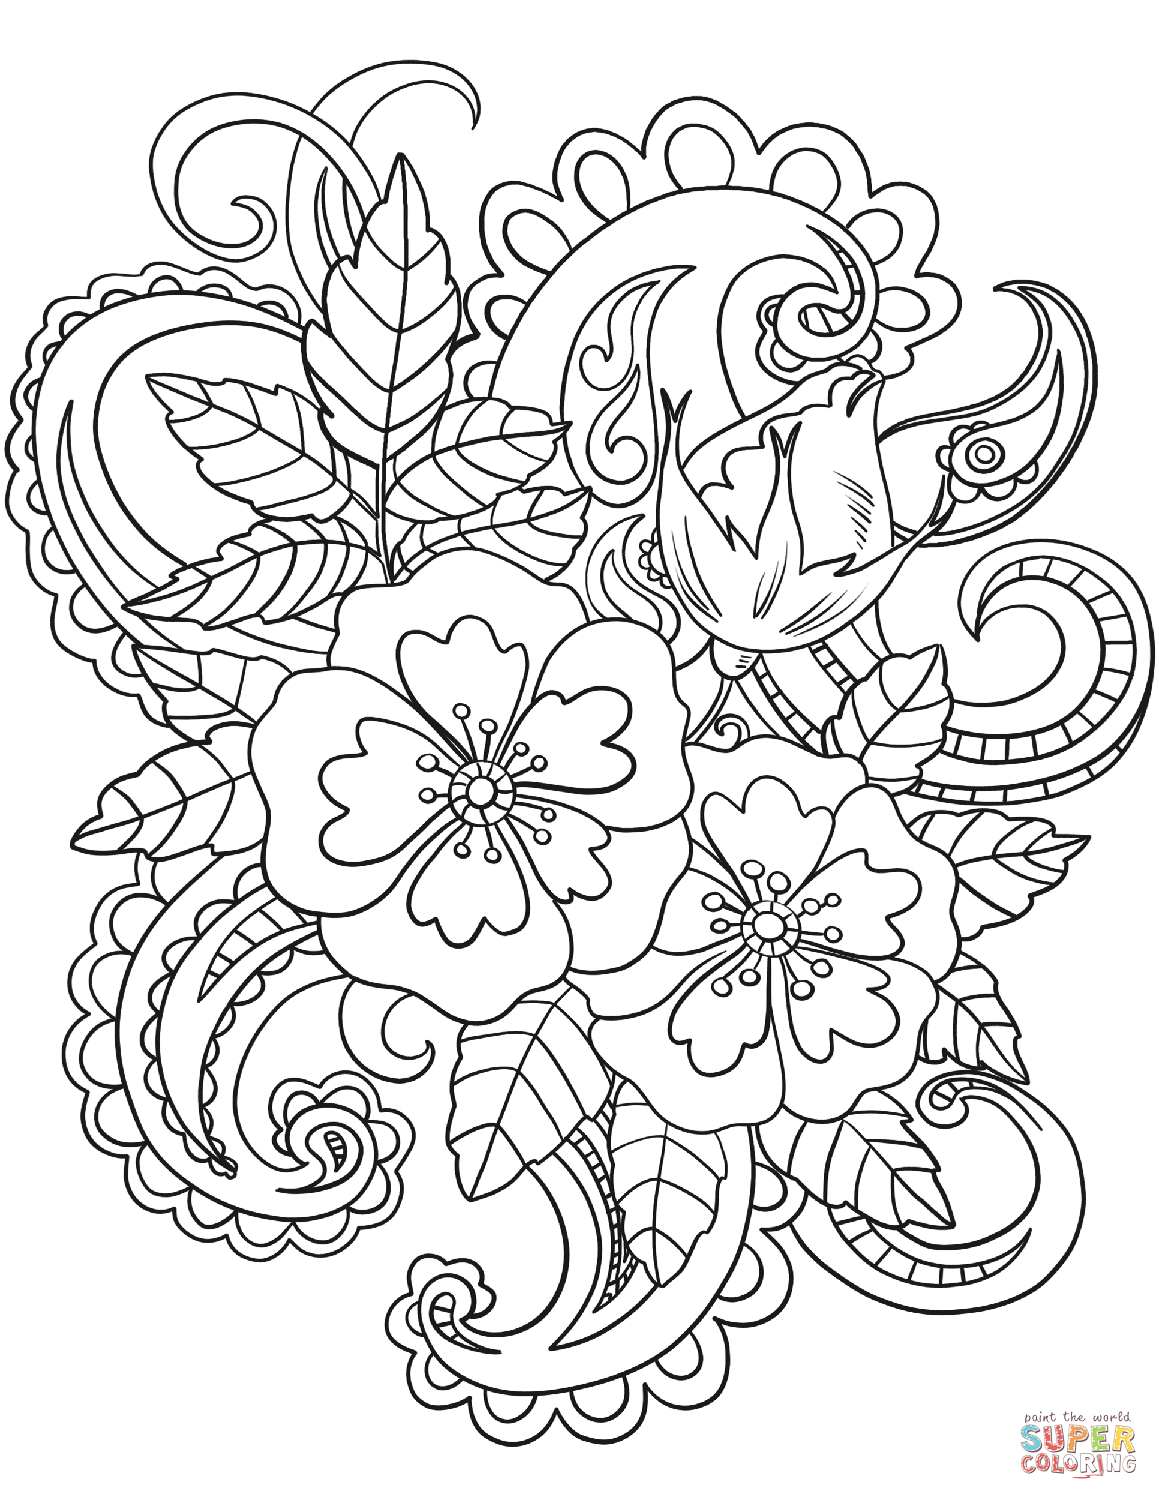 free printable paisley coloring pages paisley coloring page pages free coloring printable paisley